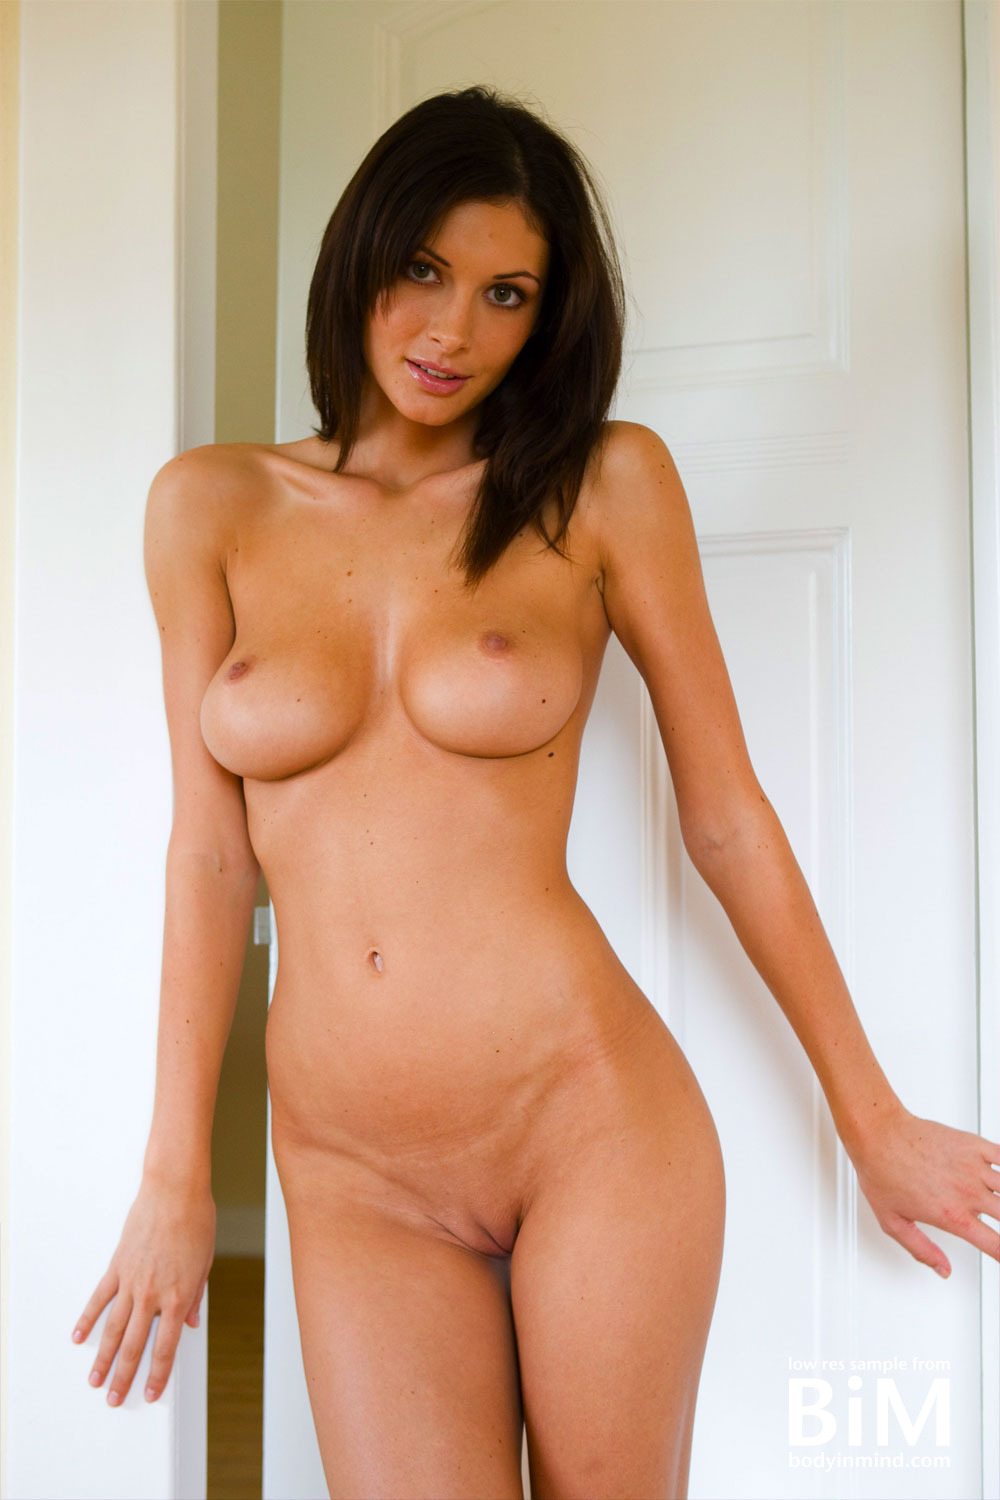 Orsi Kocsis Big Boobs Naked in the Doorway